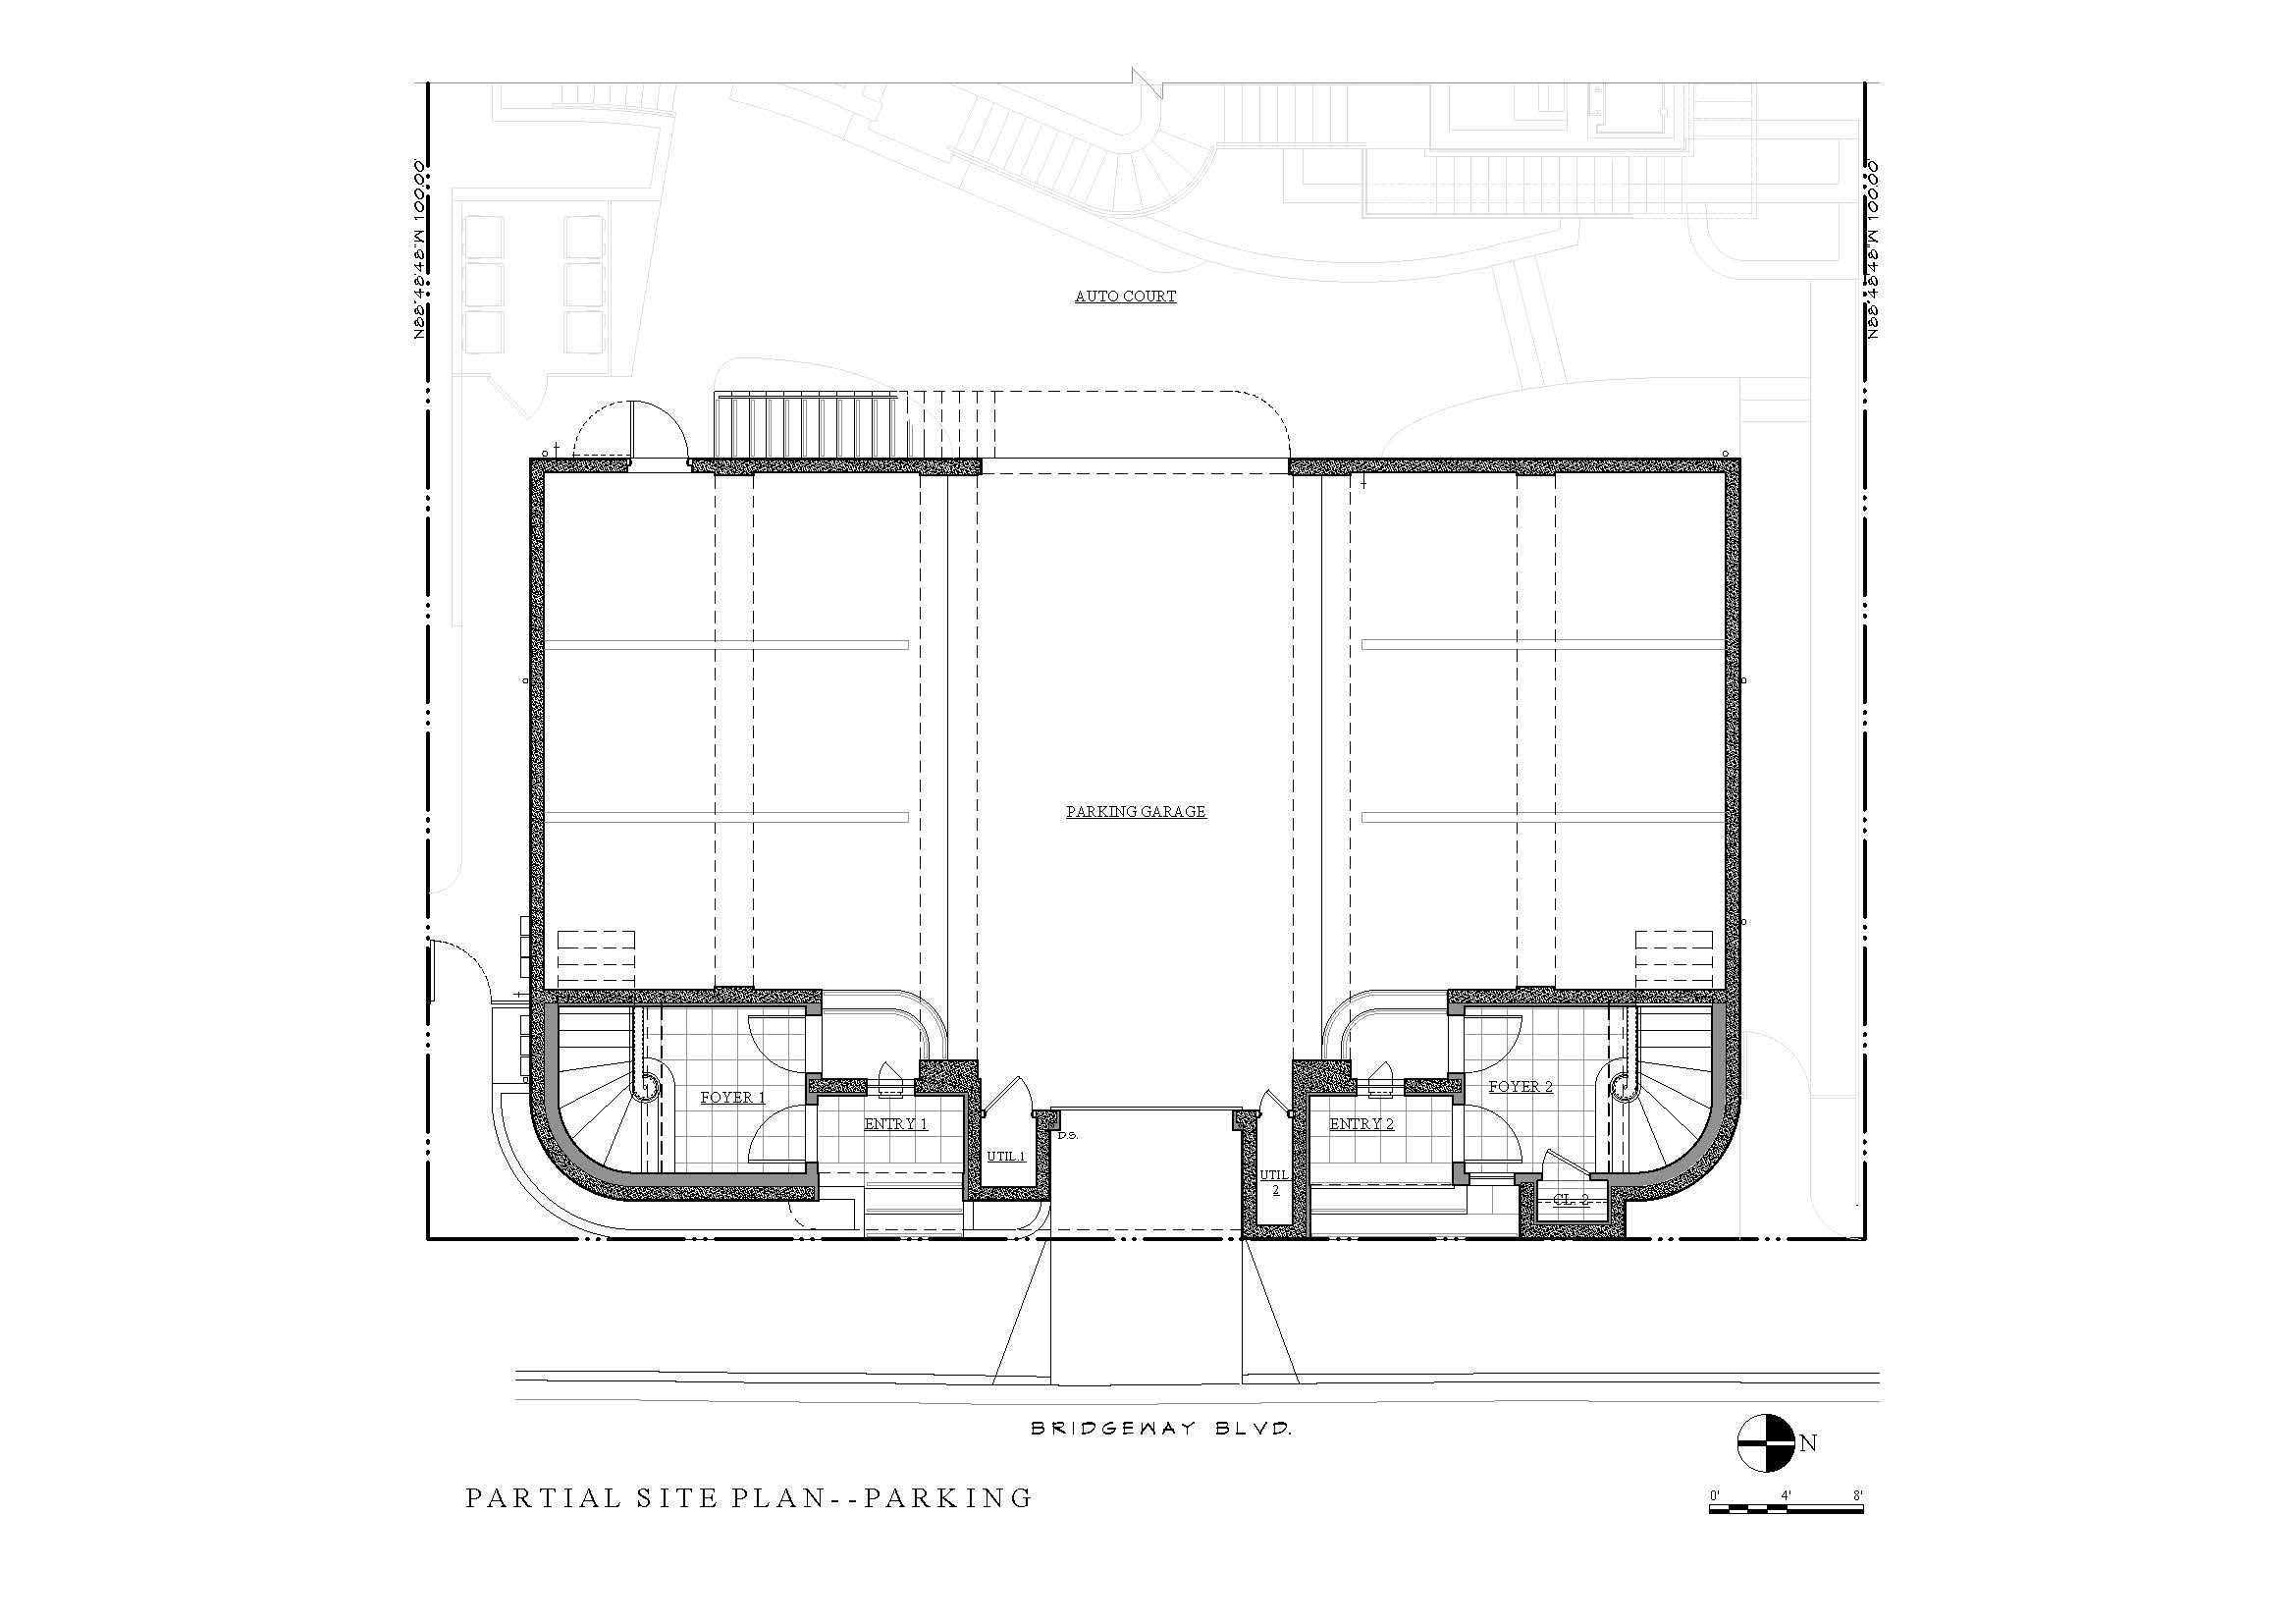 kaplan_units_2012aia_parking